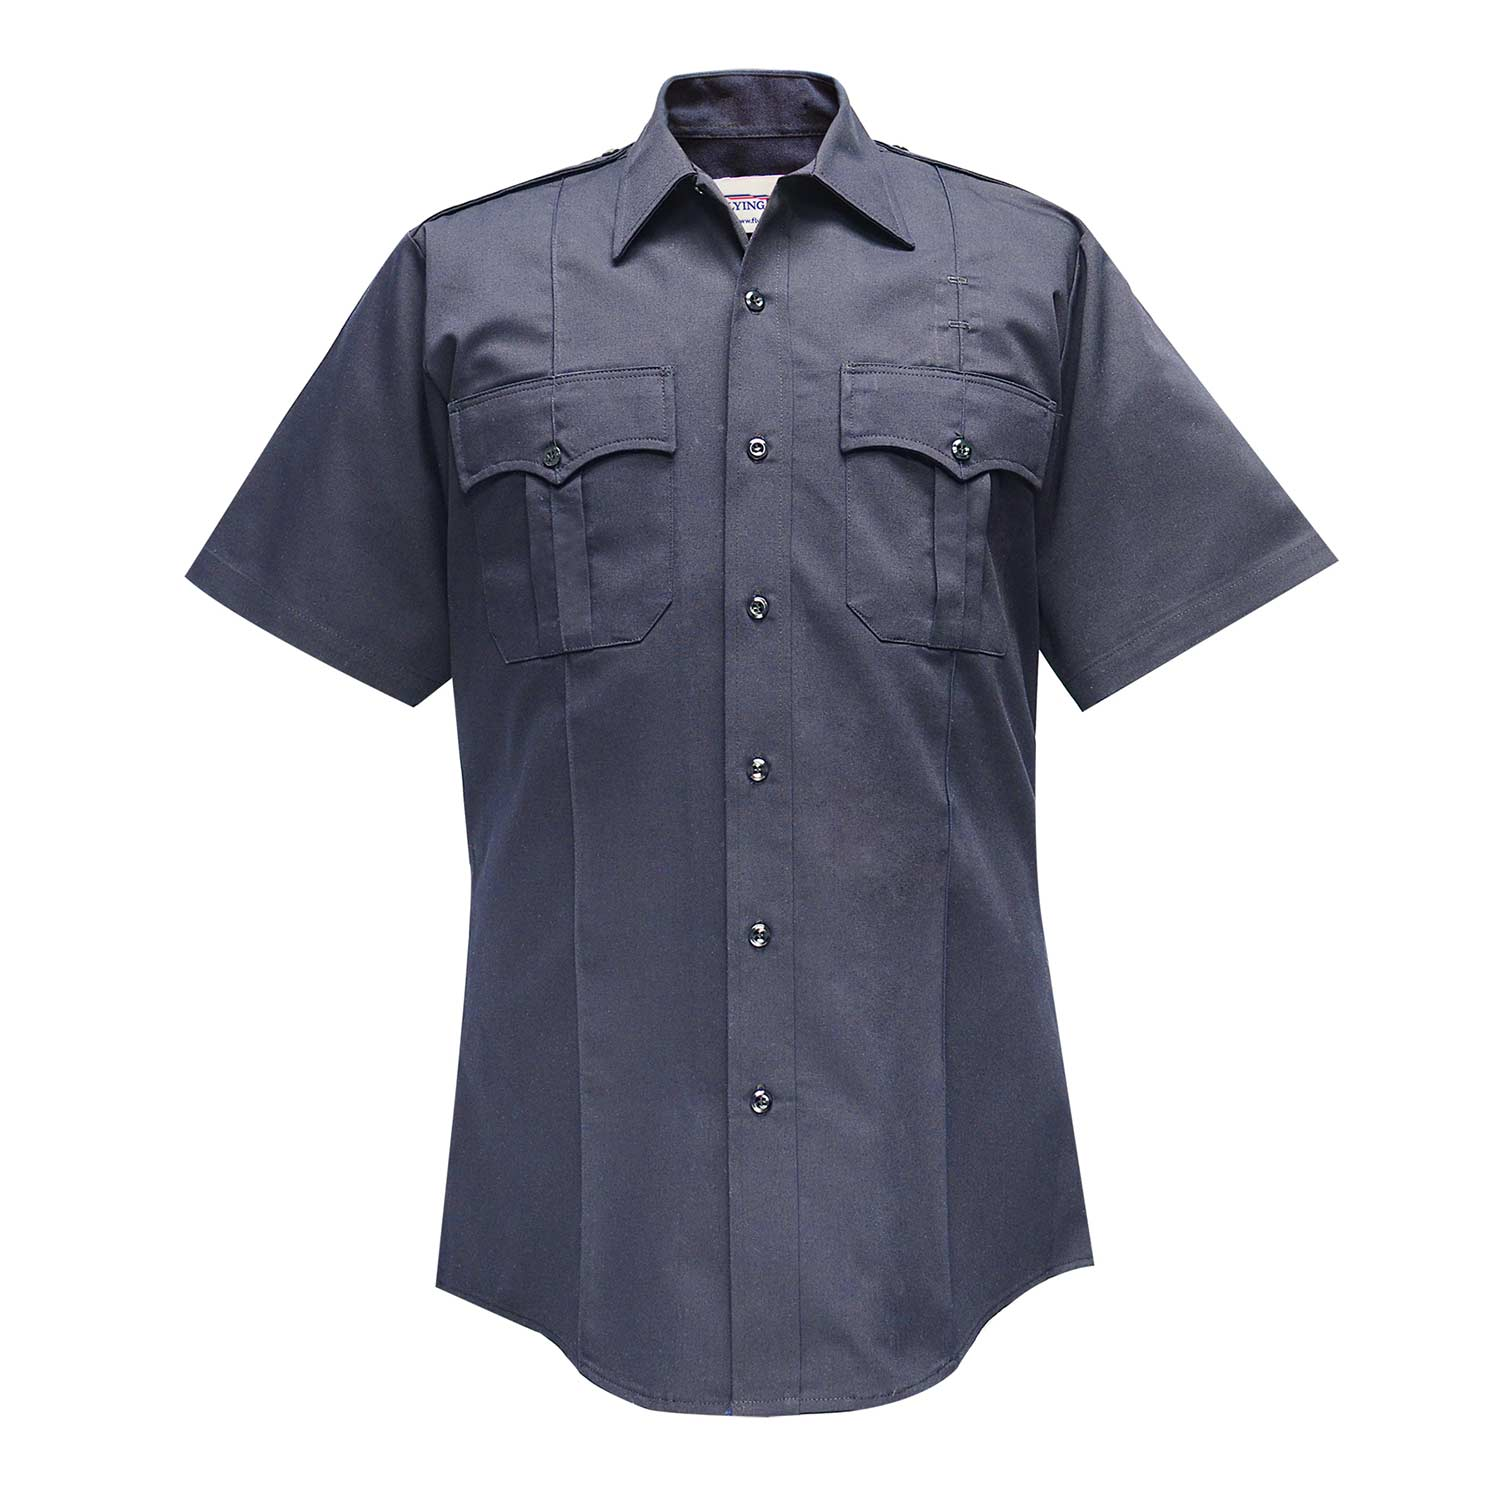 Flying Cross Men's Polyester Cotton Short Sleeve Shirt